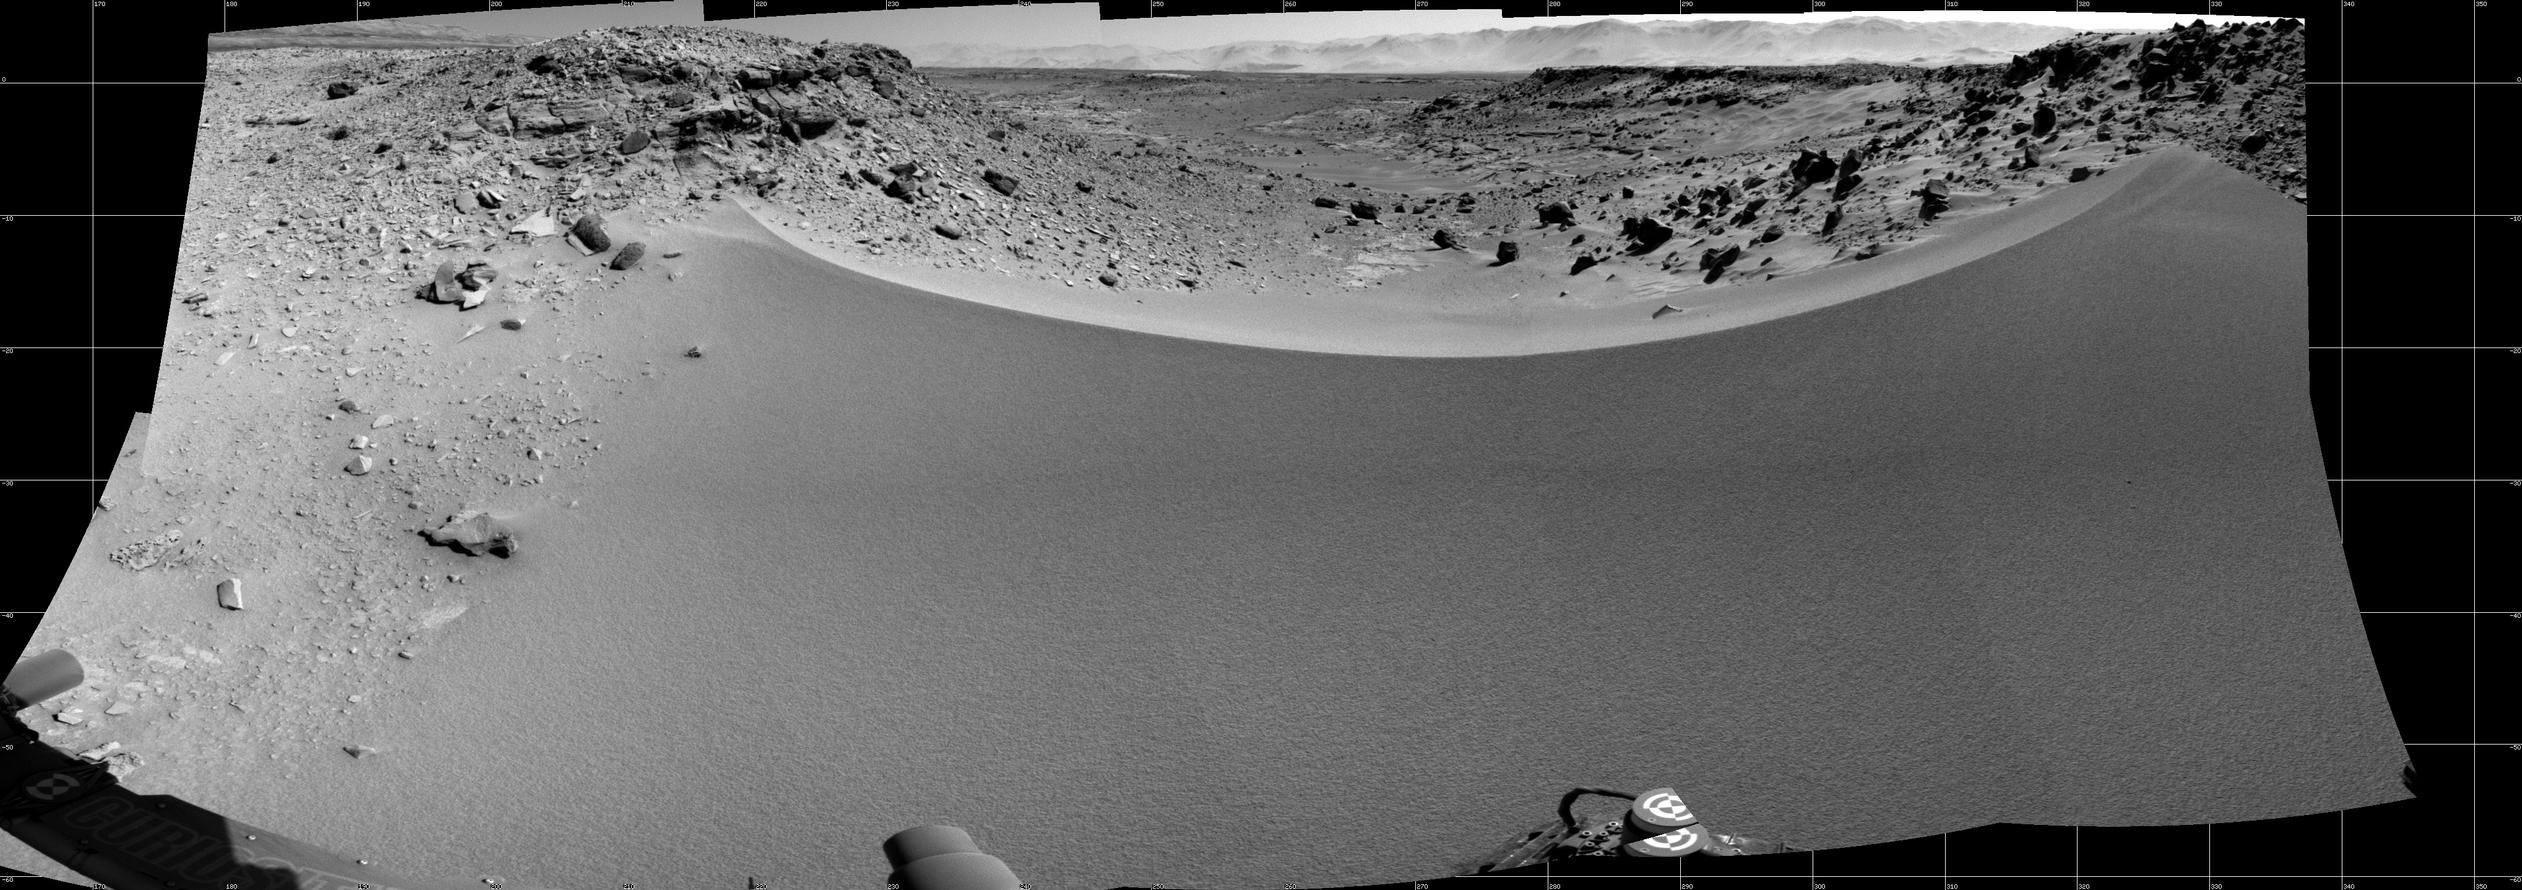 This mosaic of images from the Navigation Camera (Navcam) on NASA's Mars rover Curiosity shows the terrain to the west from the rover's position on the 528th Martian day, or sol, of the mission (Jan. 30, 2014).